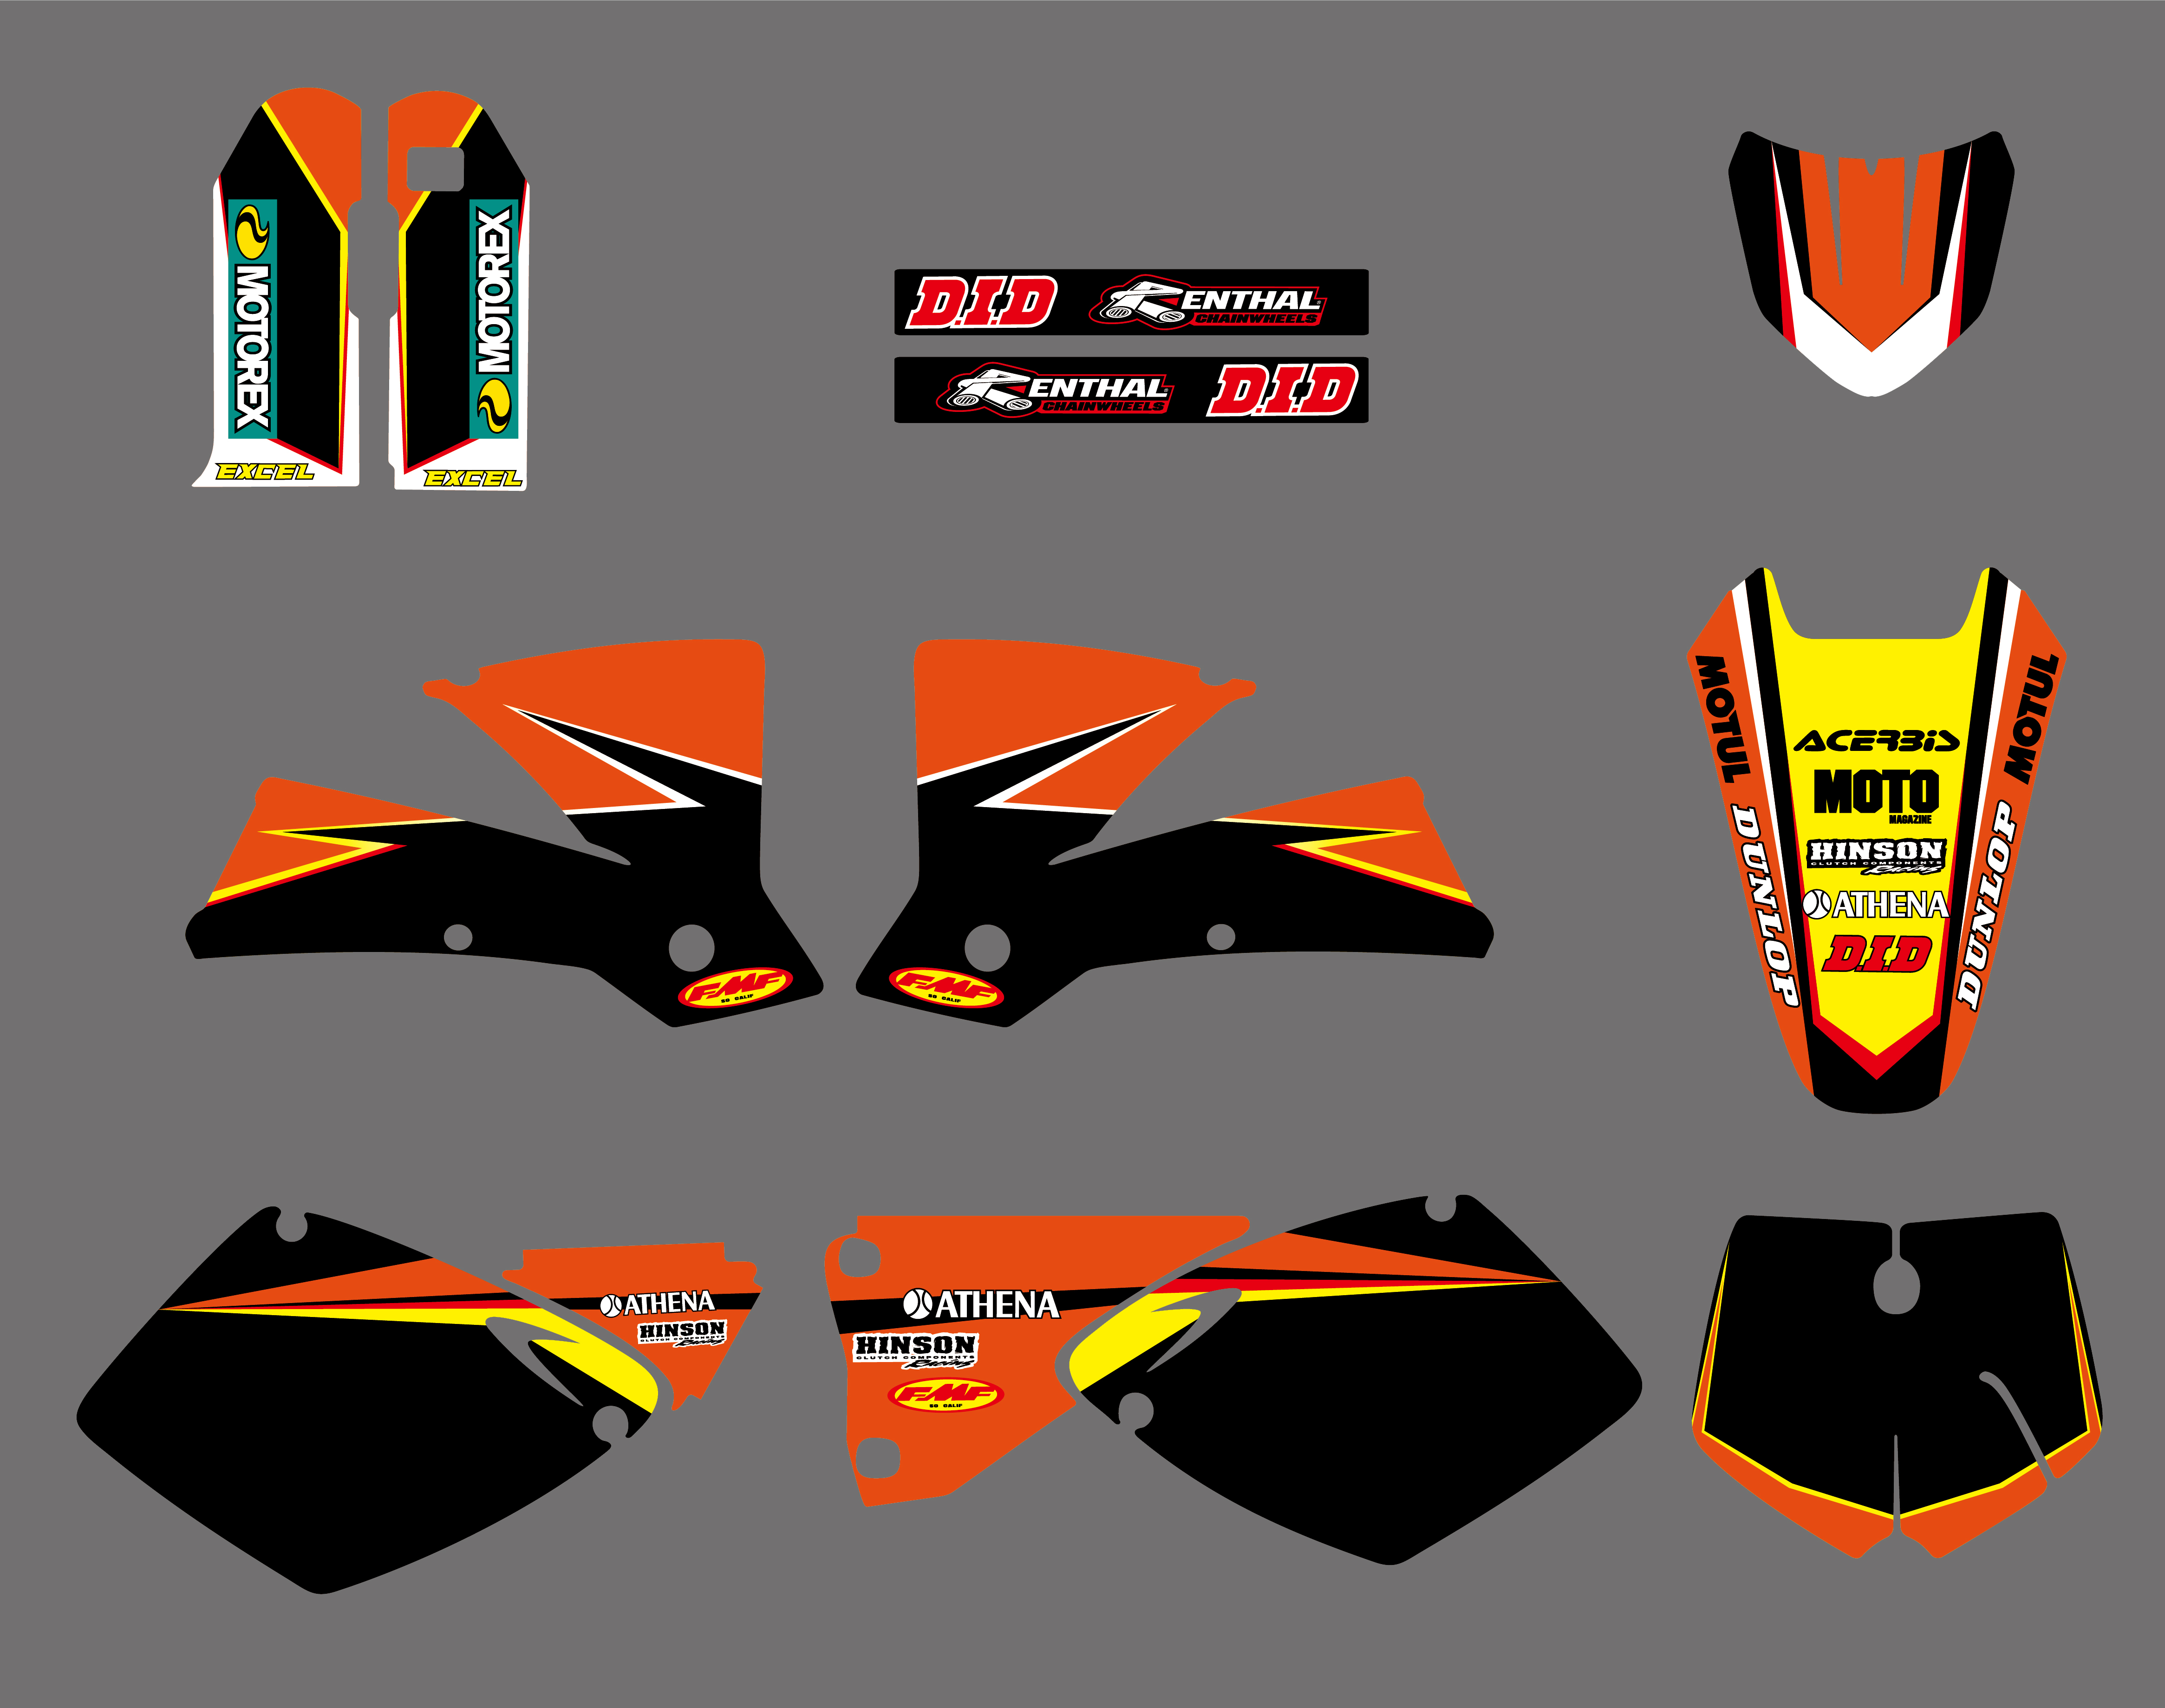 Motorcycle Team Graphics Sticker Decals Deco For <font><b>KTM</b></font> <font><b>SX</b></font> <font><b>125</b></font> 250 380 400 520 <font><b>2001</b></font> 2002 MXC 200 300 450 525 <font><b>SX</b></font> <font><b>125</b></font> <font><b>2001</b></font>-2003 image